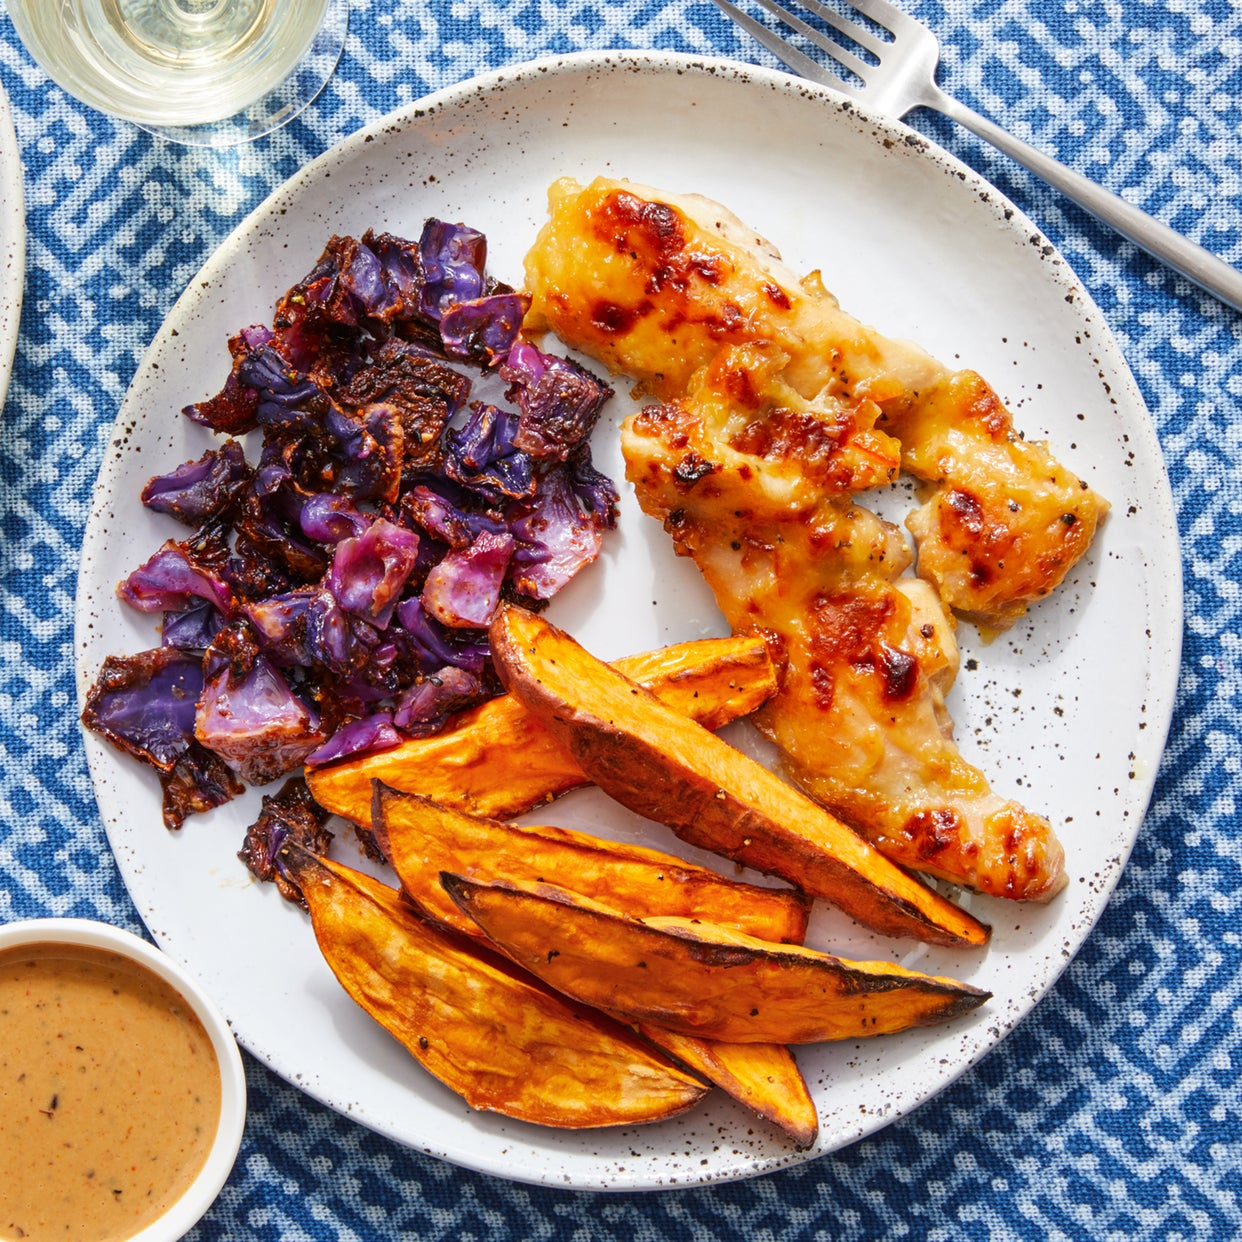 Orange-Miso Chicken with Togarashi Cabbage, Sweet Potatoes, & Black Bean Mayo